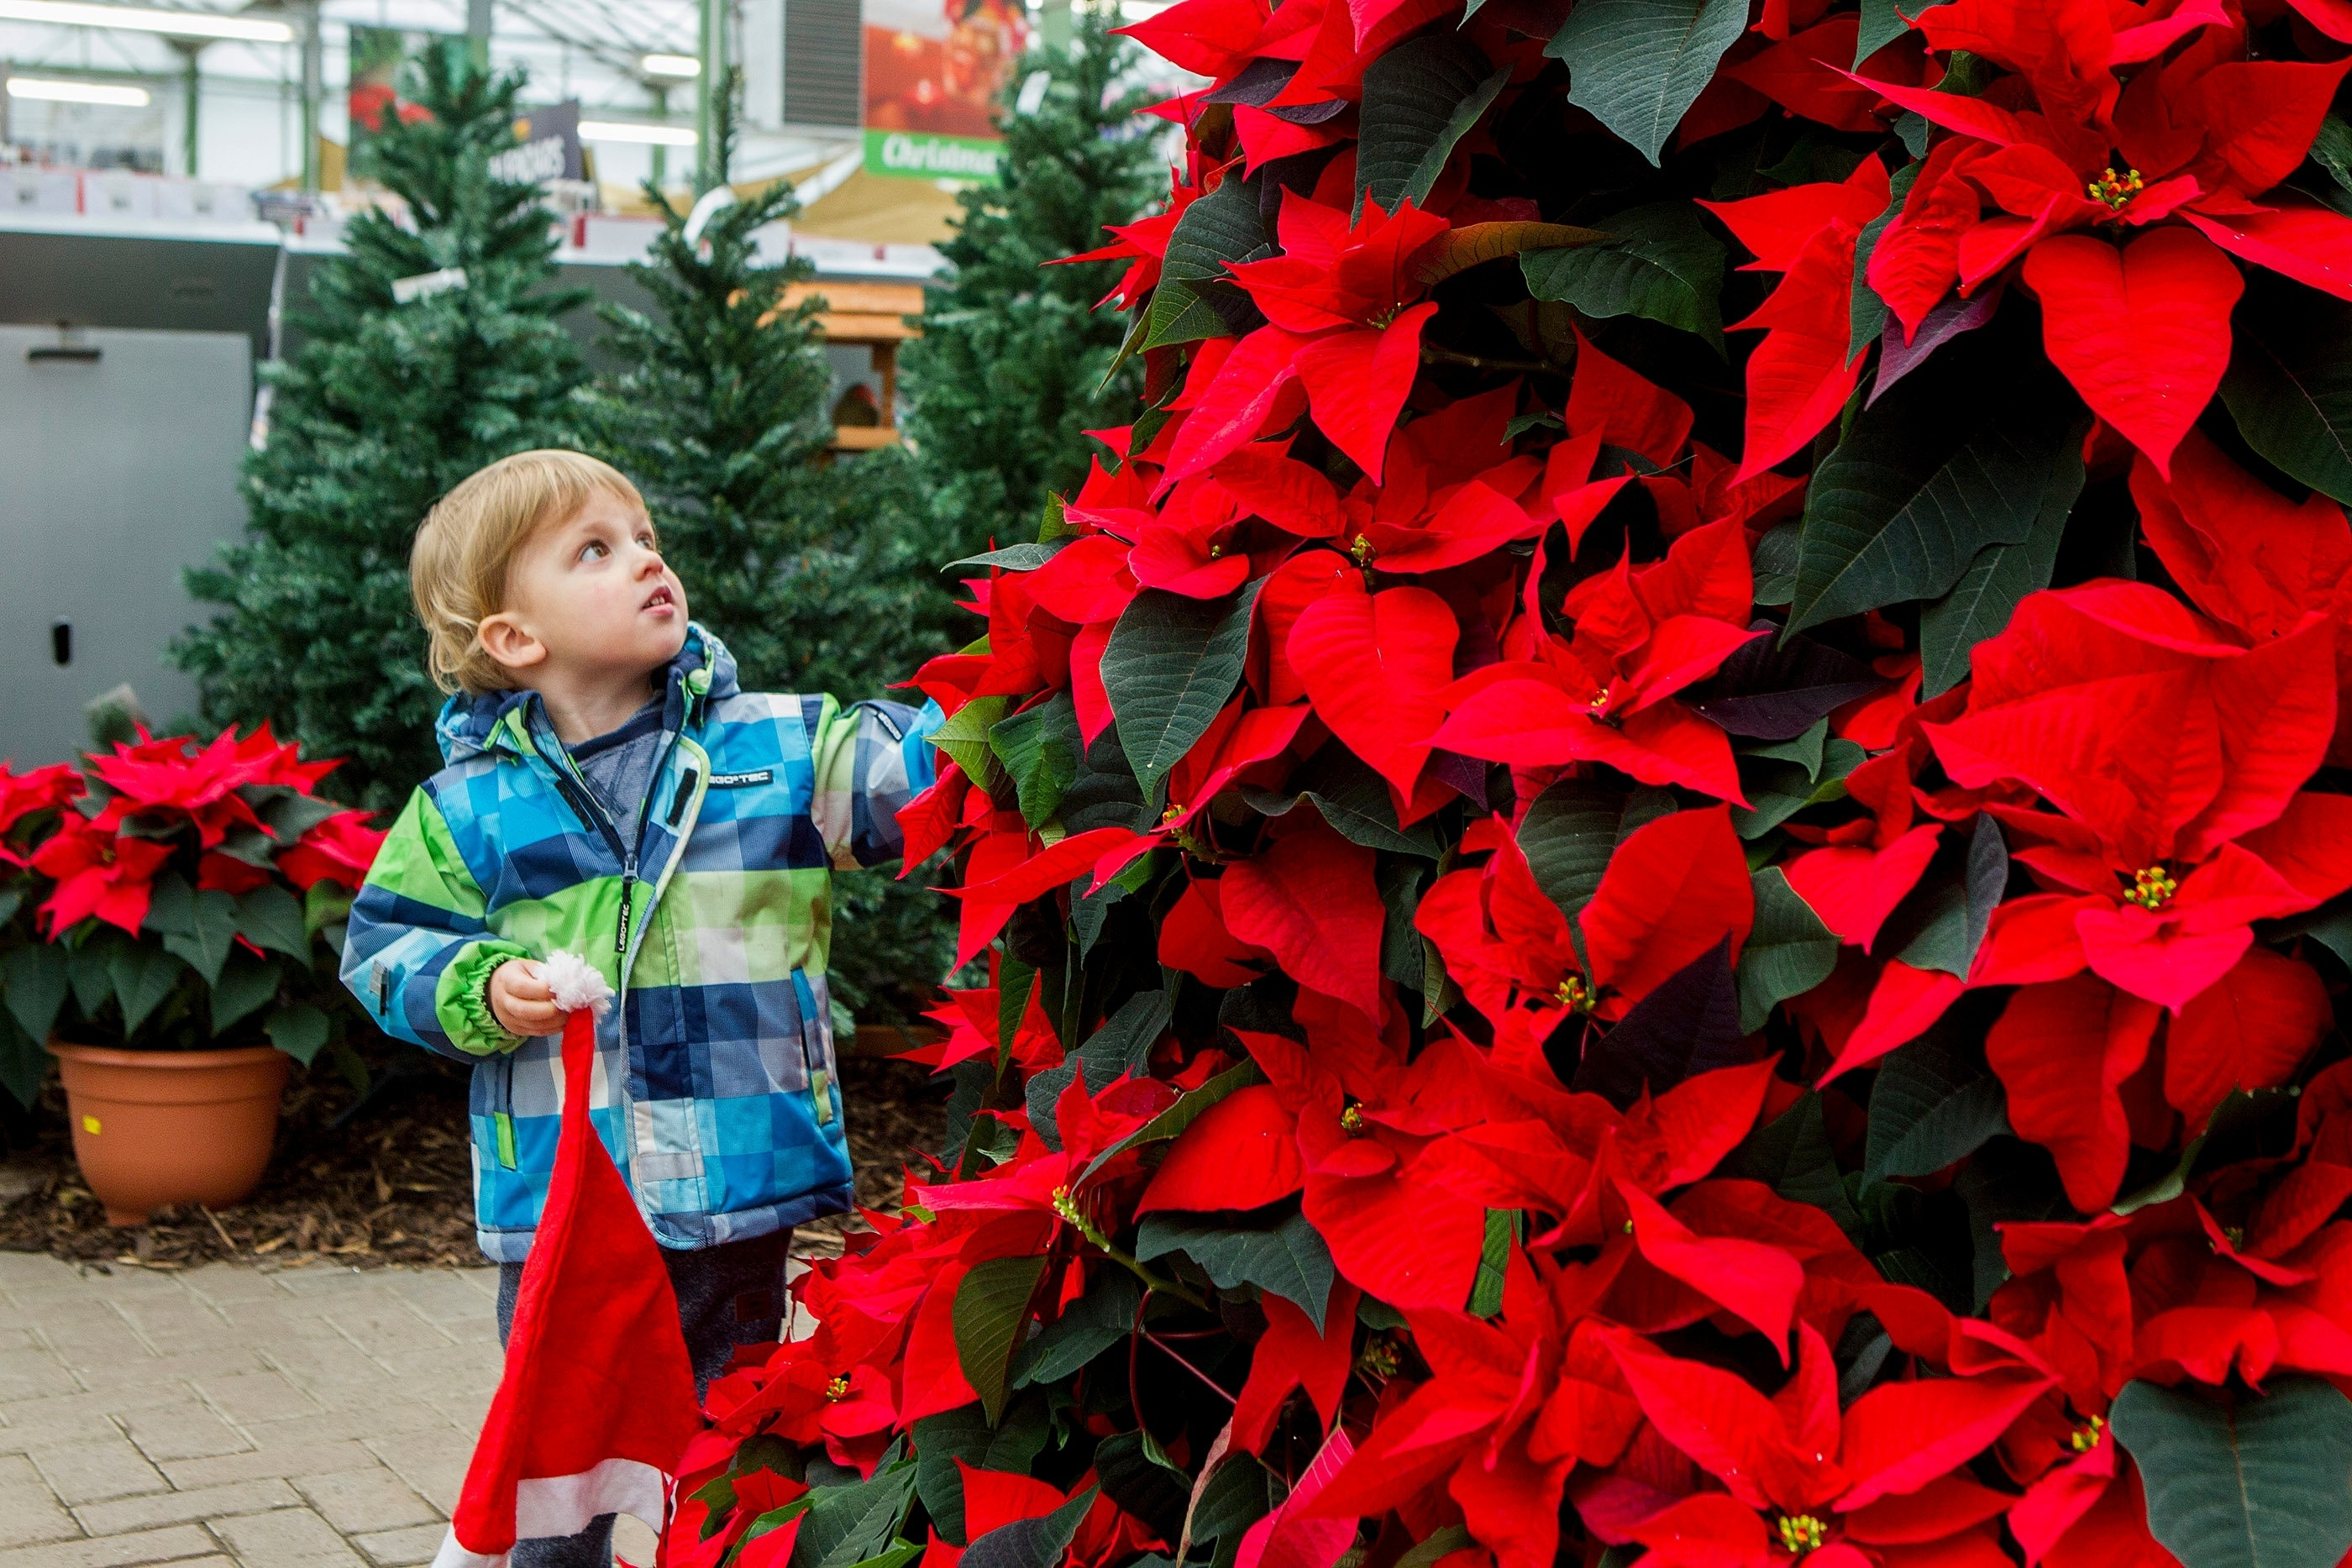 Two-year-old Blake Wilson with a festive 9 foot poinsettia Christmas tree at Pentland Plants Garden Centre, Midlothian.